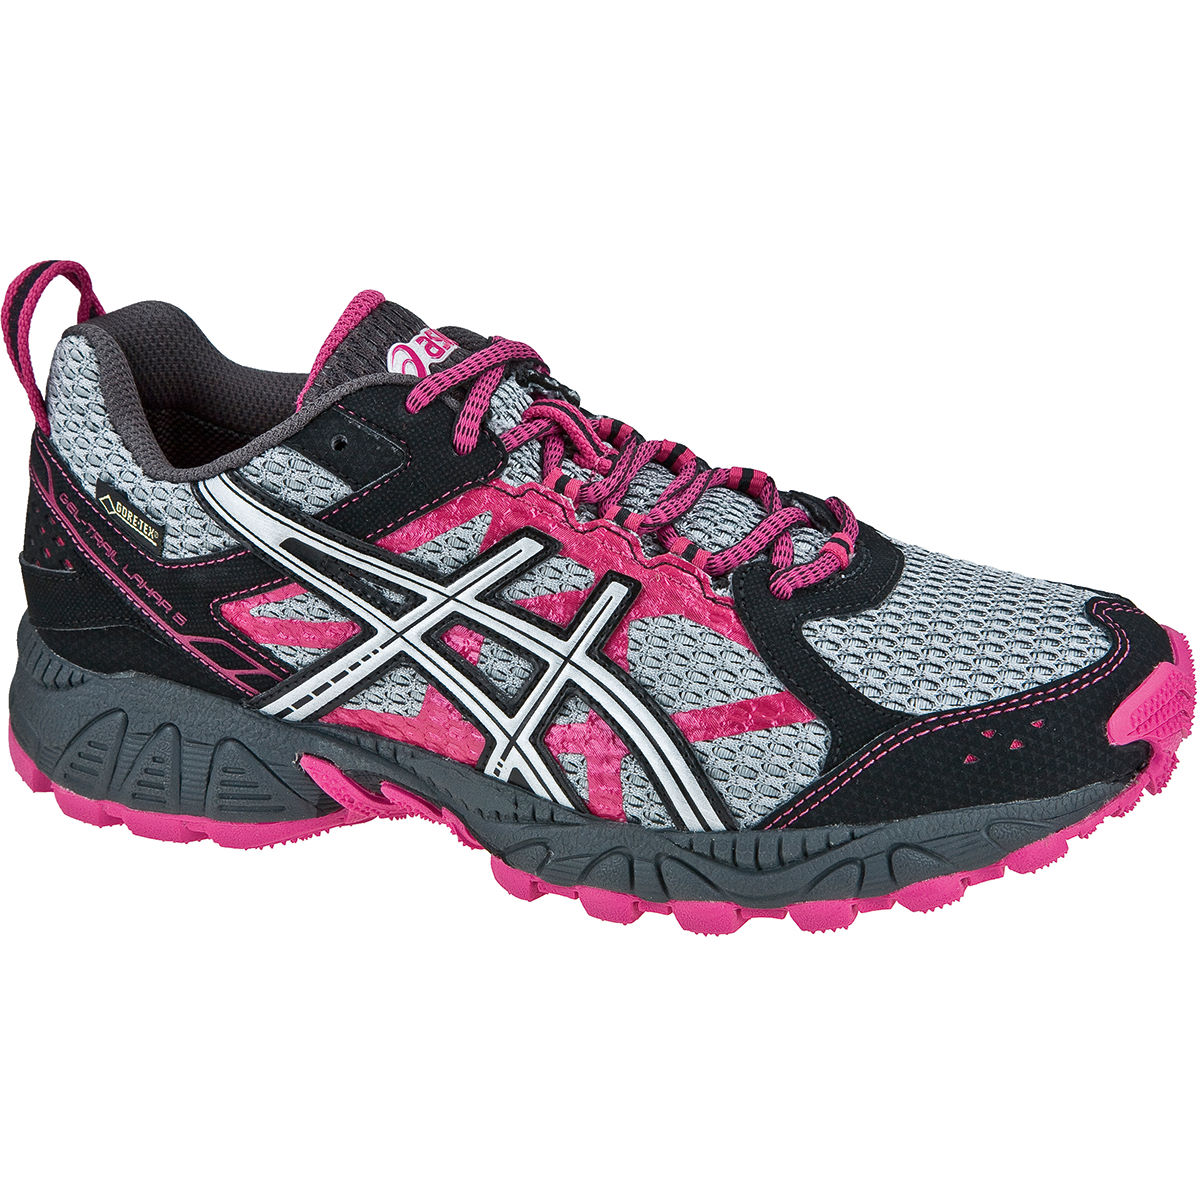 chaussures de running trail asics ladies gel trail lahar 5 gore tex shoes aw13 wiggle france. Black Bedroom Furniture Sets. Home Design Ideas